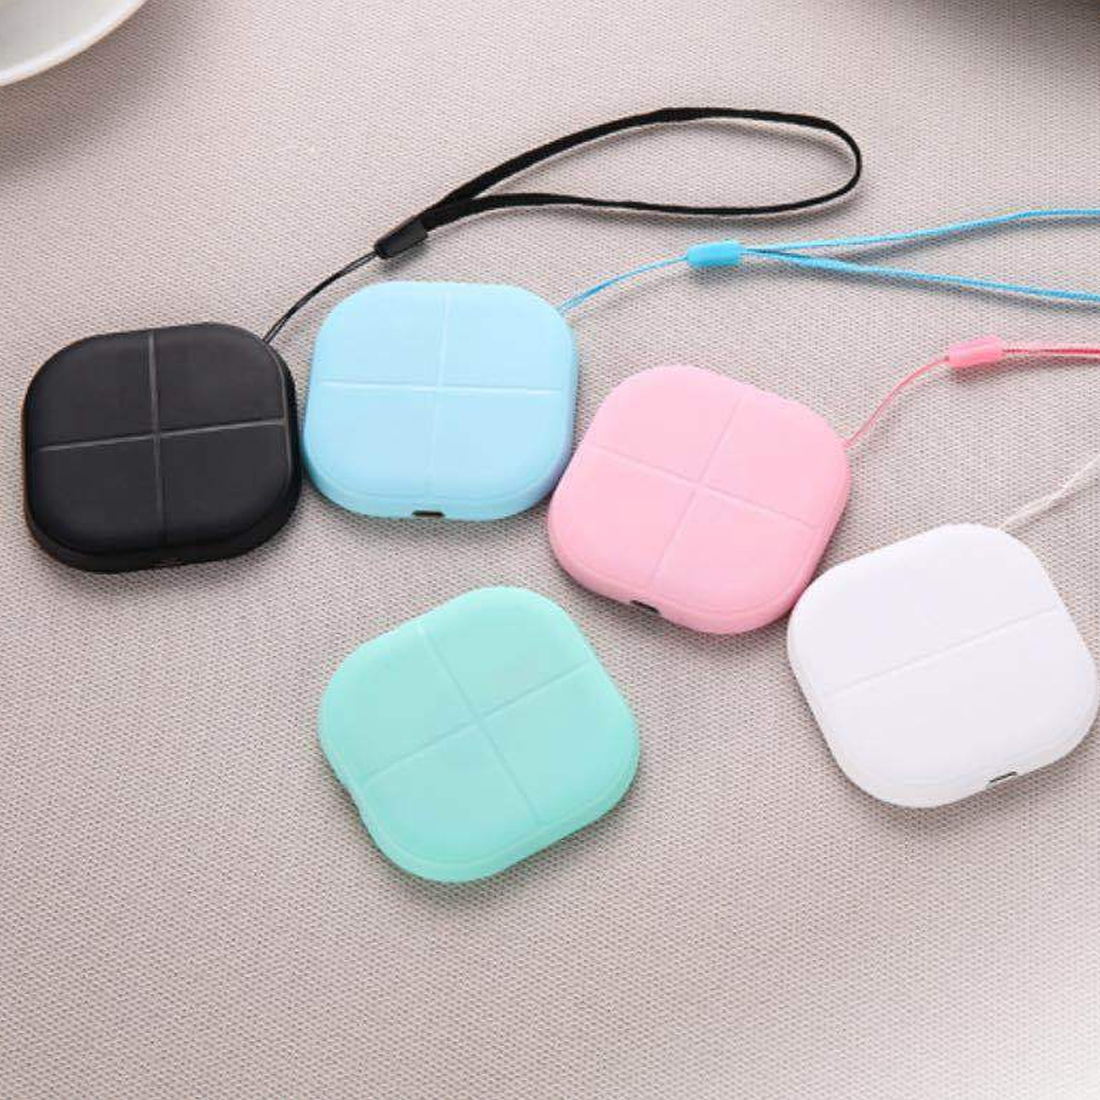 Cute QI Wireless Charger Charging Pad for Samsung Galaxy